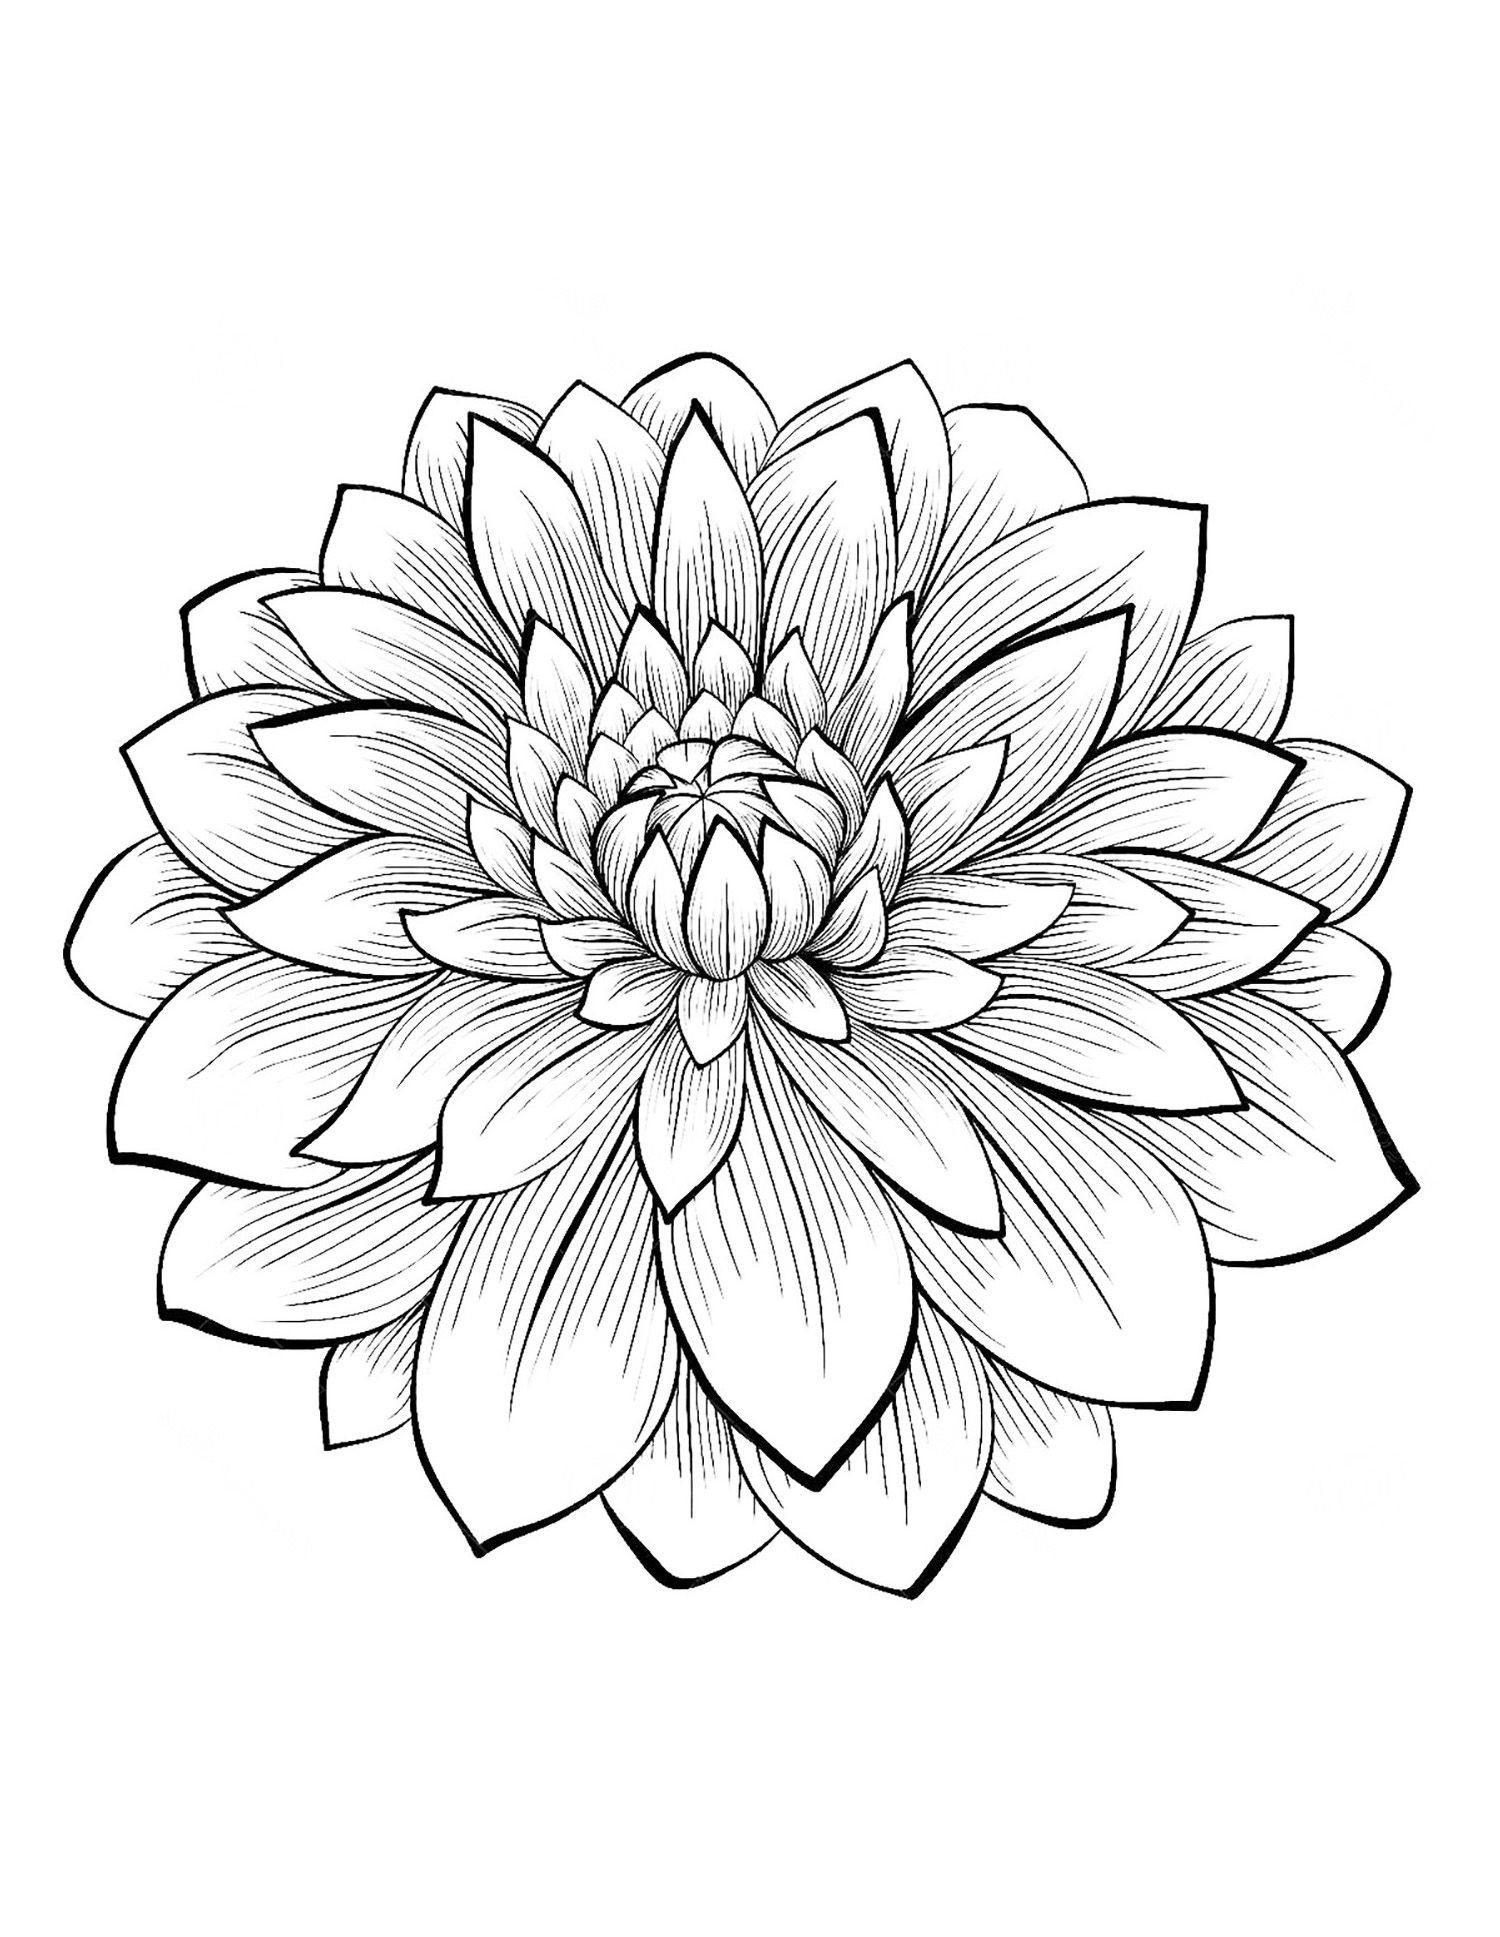 1500x1937 Dahlia Color One Of The Most Beautiful Flowers, From The Gallery